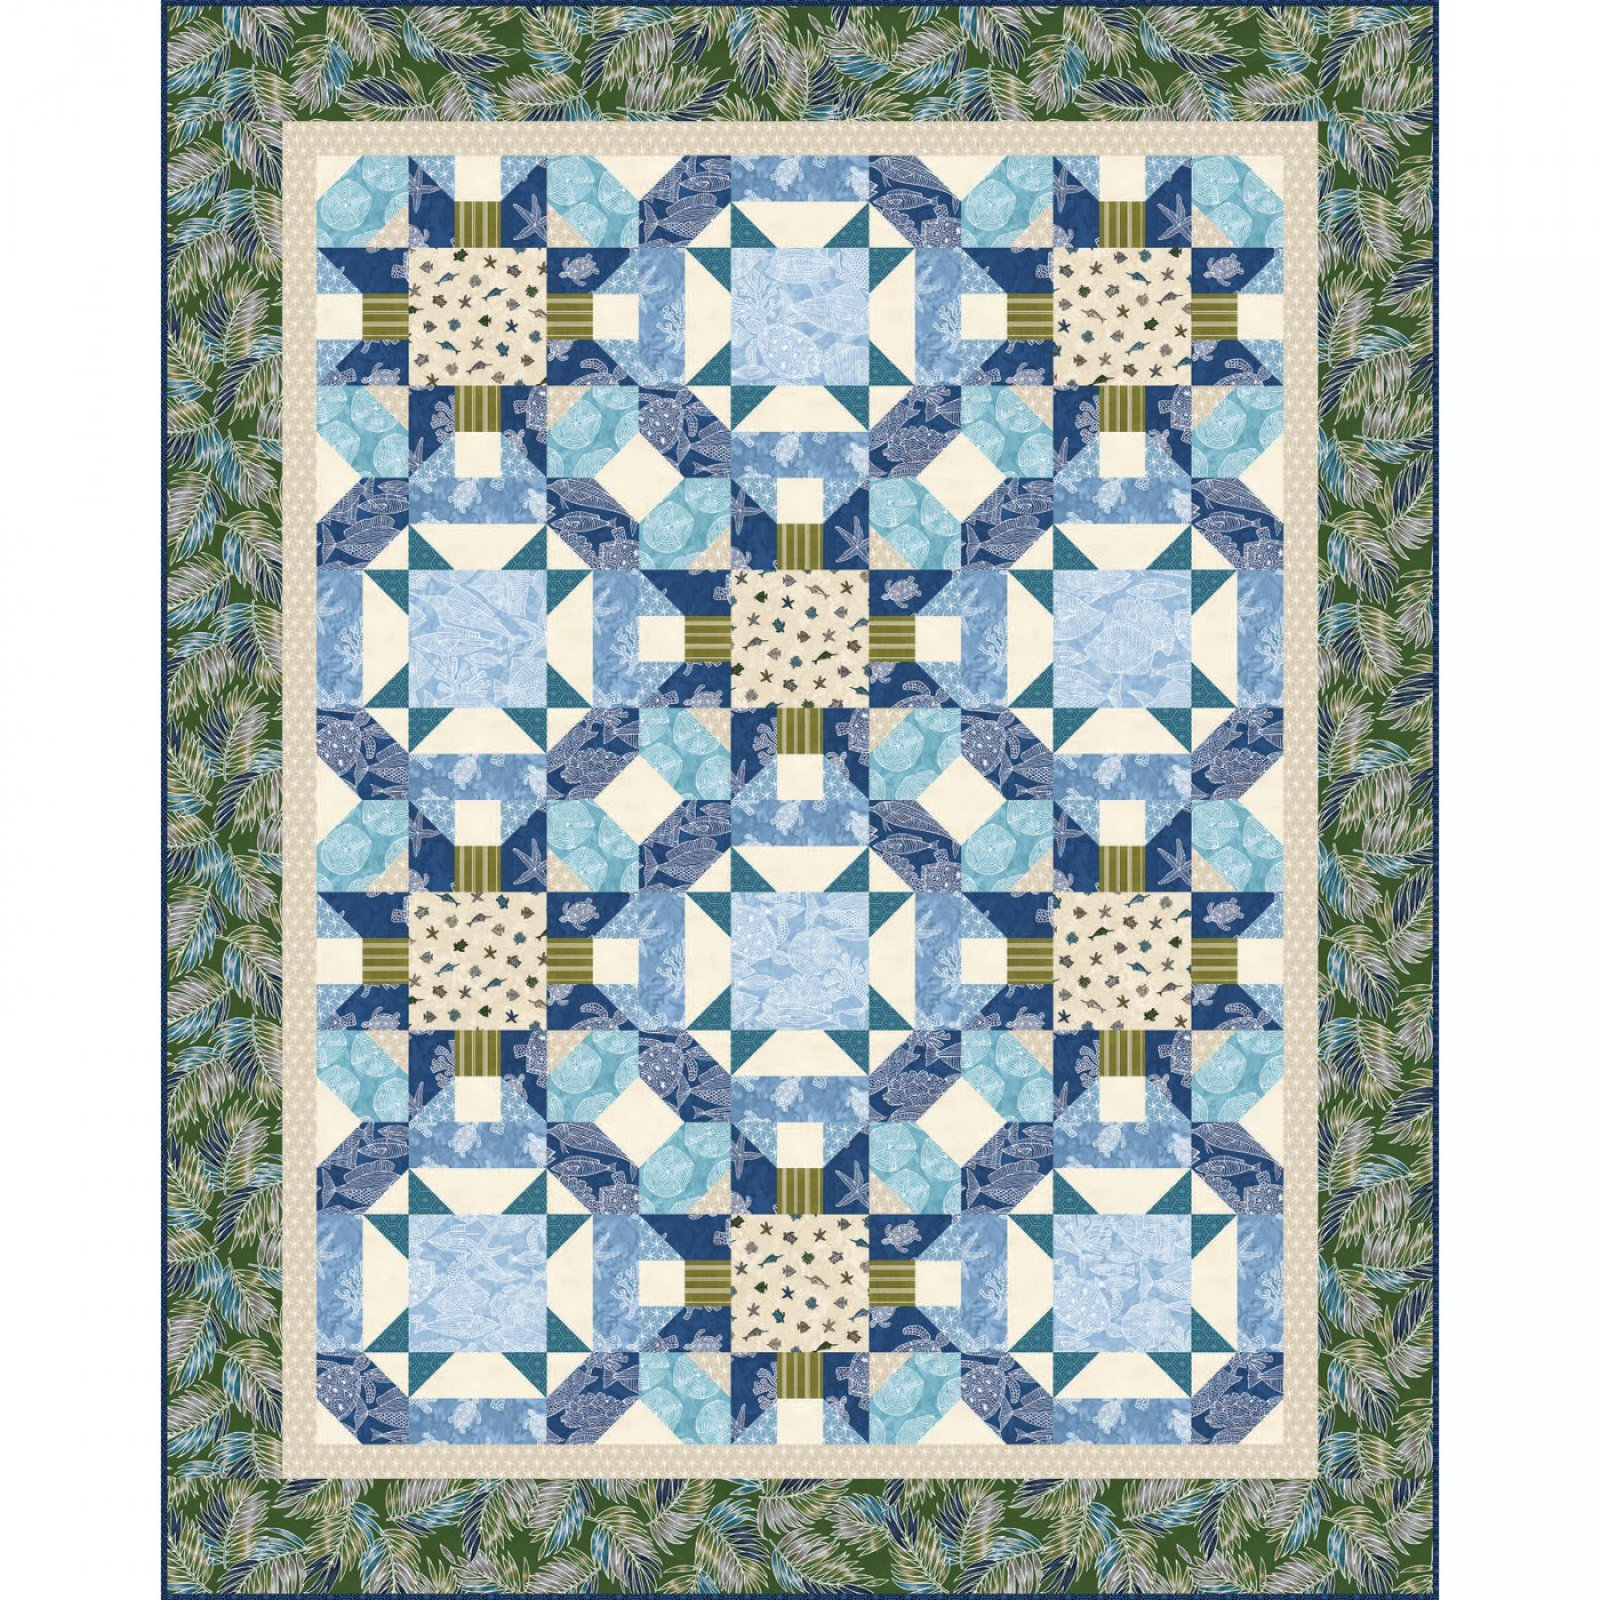 Turtle Beach Quilt Kit - Turtle Bay fabric collection